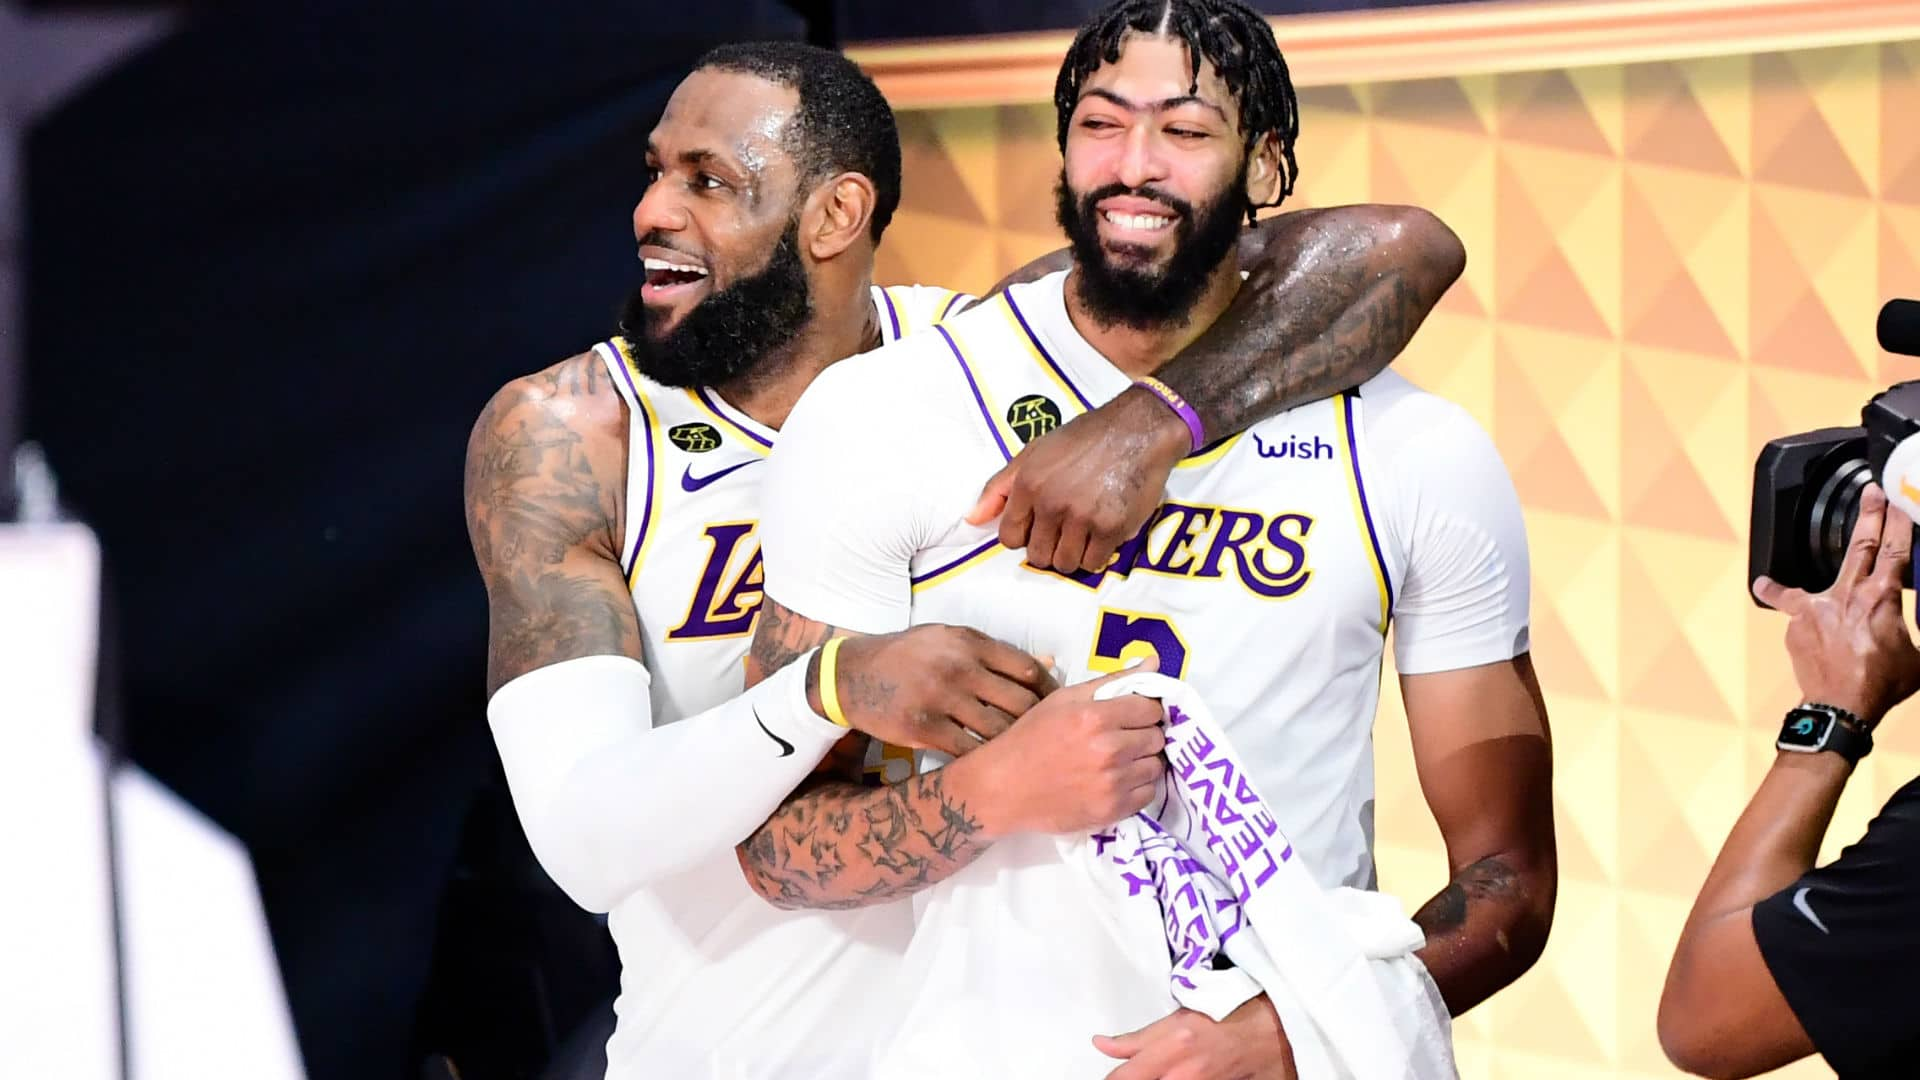 lebron-james-contract-particulars-what-extension-methodology-for-lakers-future-anthony-davis-subsequent-deal.jpg